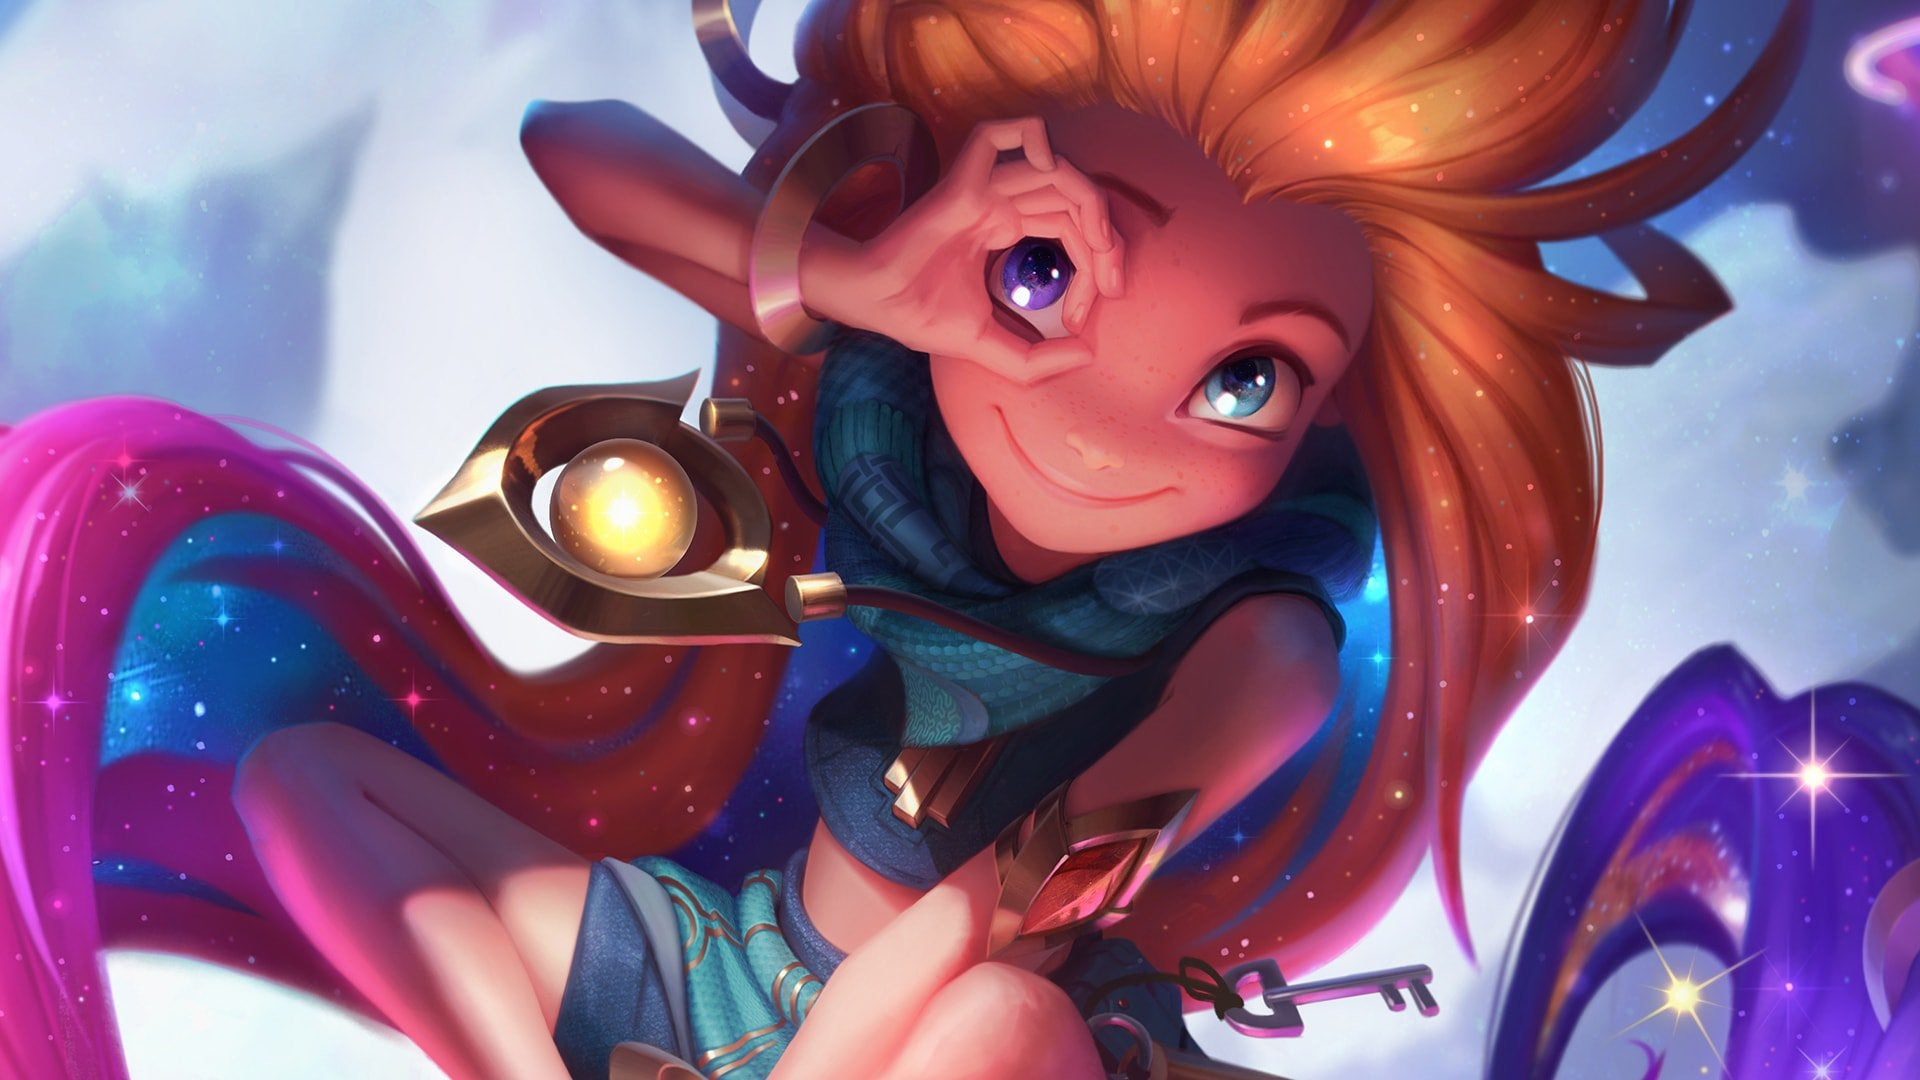 Best League Of Legends Middle Lane Champions For Patch 10.22 To Climb Ranks In Solo Queue